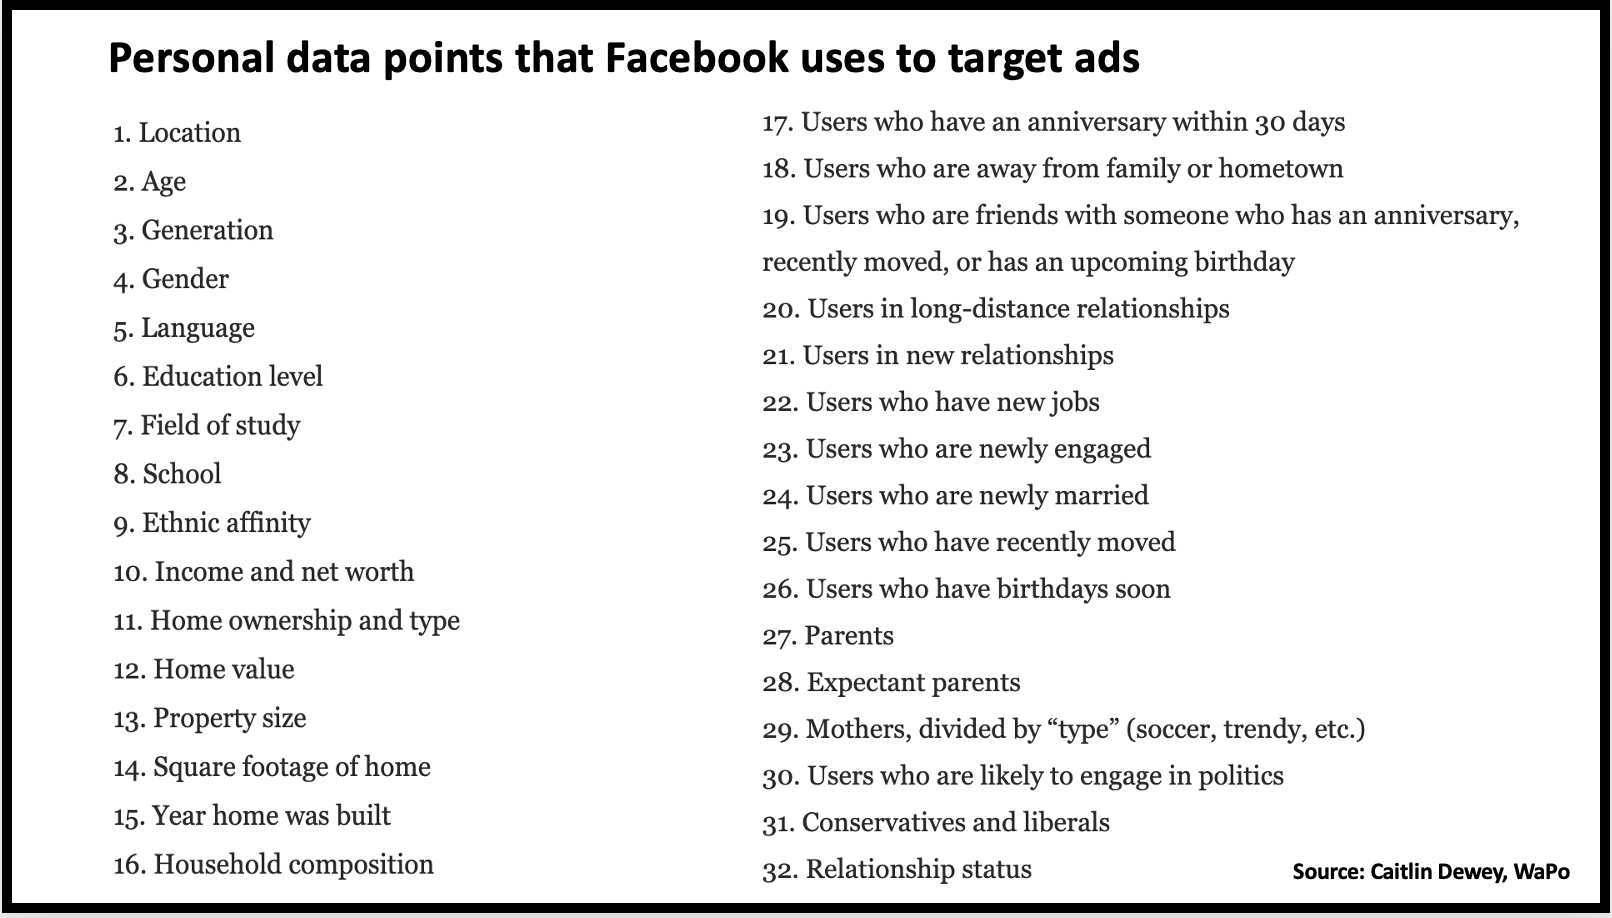 Personal data points that Facebook uses to target ads